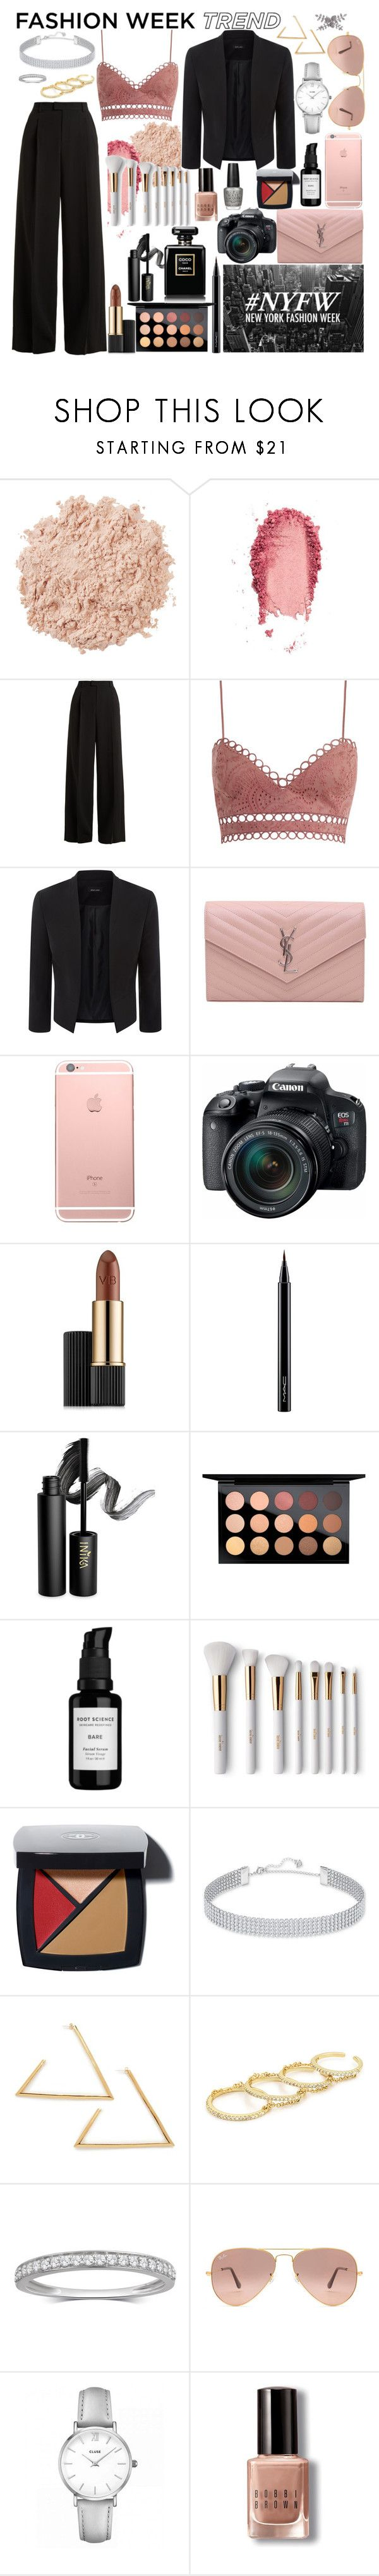 """""""Trend Report: New York Fahion Week"""" by lifestyleduckling ❤ liked on Polyvore featuring La Mer, SkinCare, RED Valentino, Zimmermann, Yves Saint Laurent, Eos, Estée Lauder, MAC Cosmetics, INIKA and Root Science"""